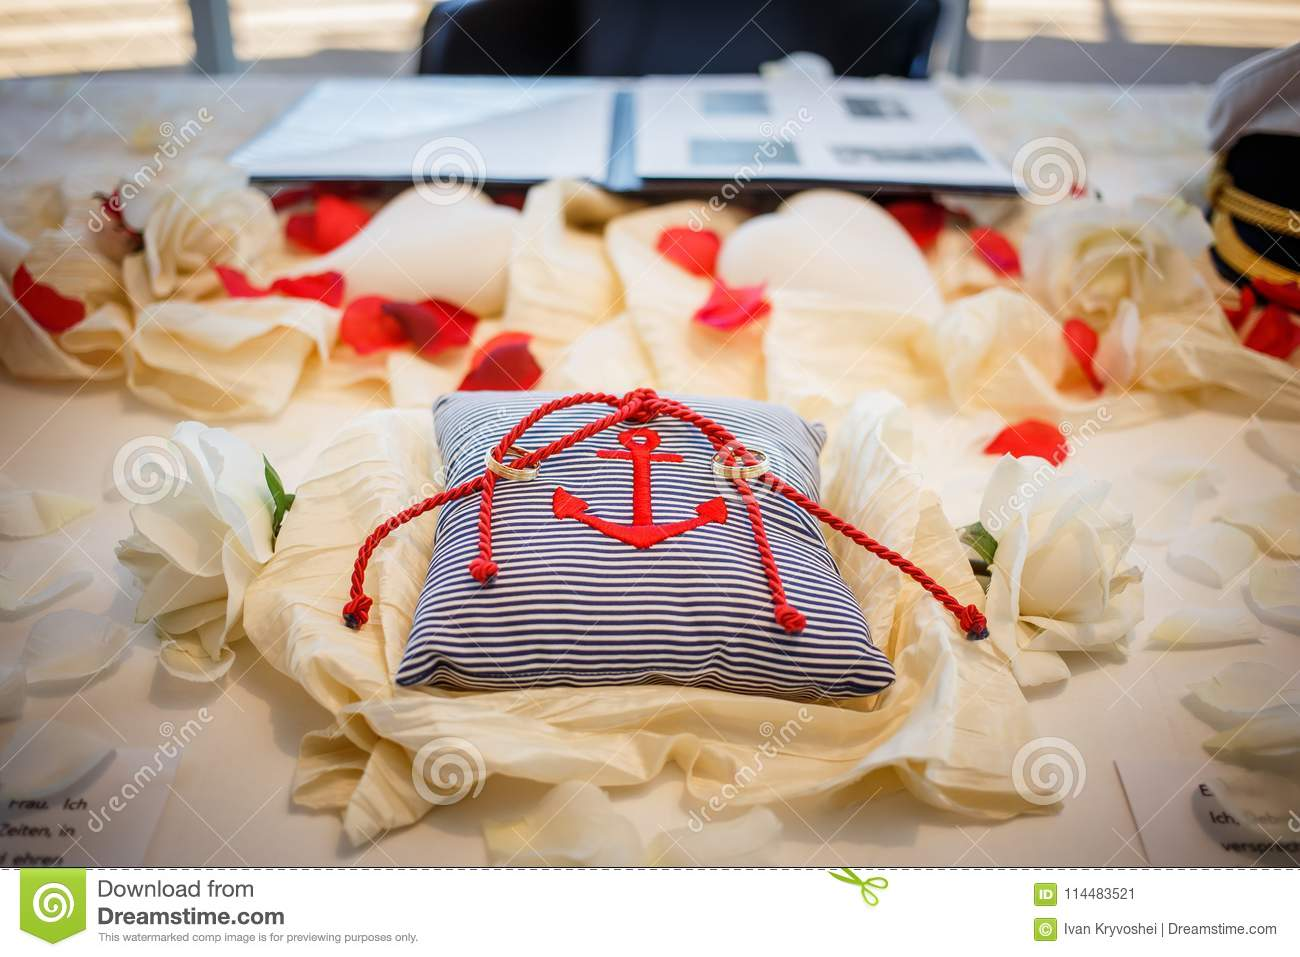 Wedding Rings Together With Red Rope On Striped Pillow With Anchor